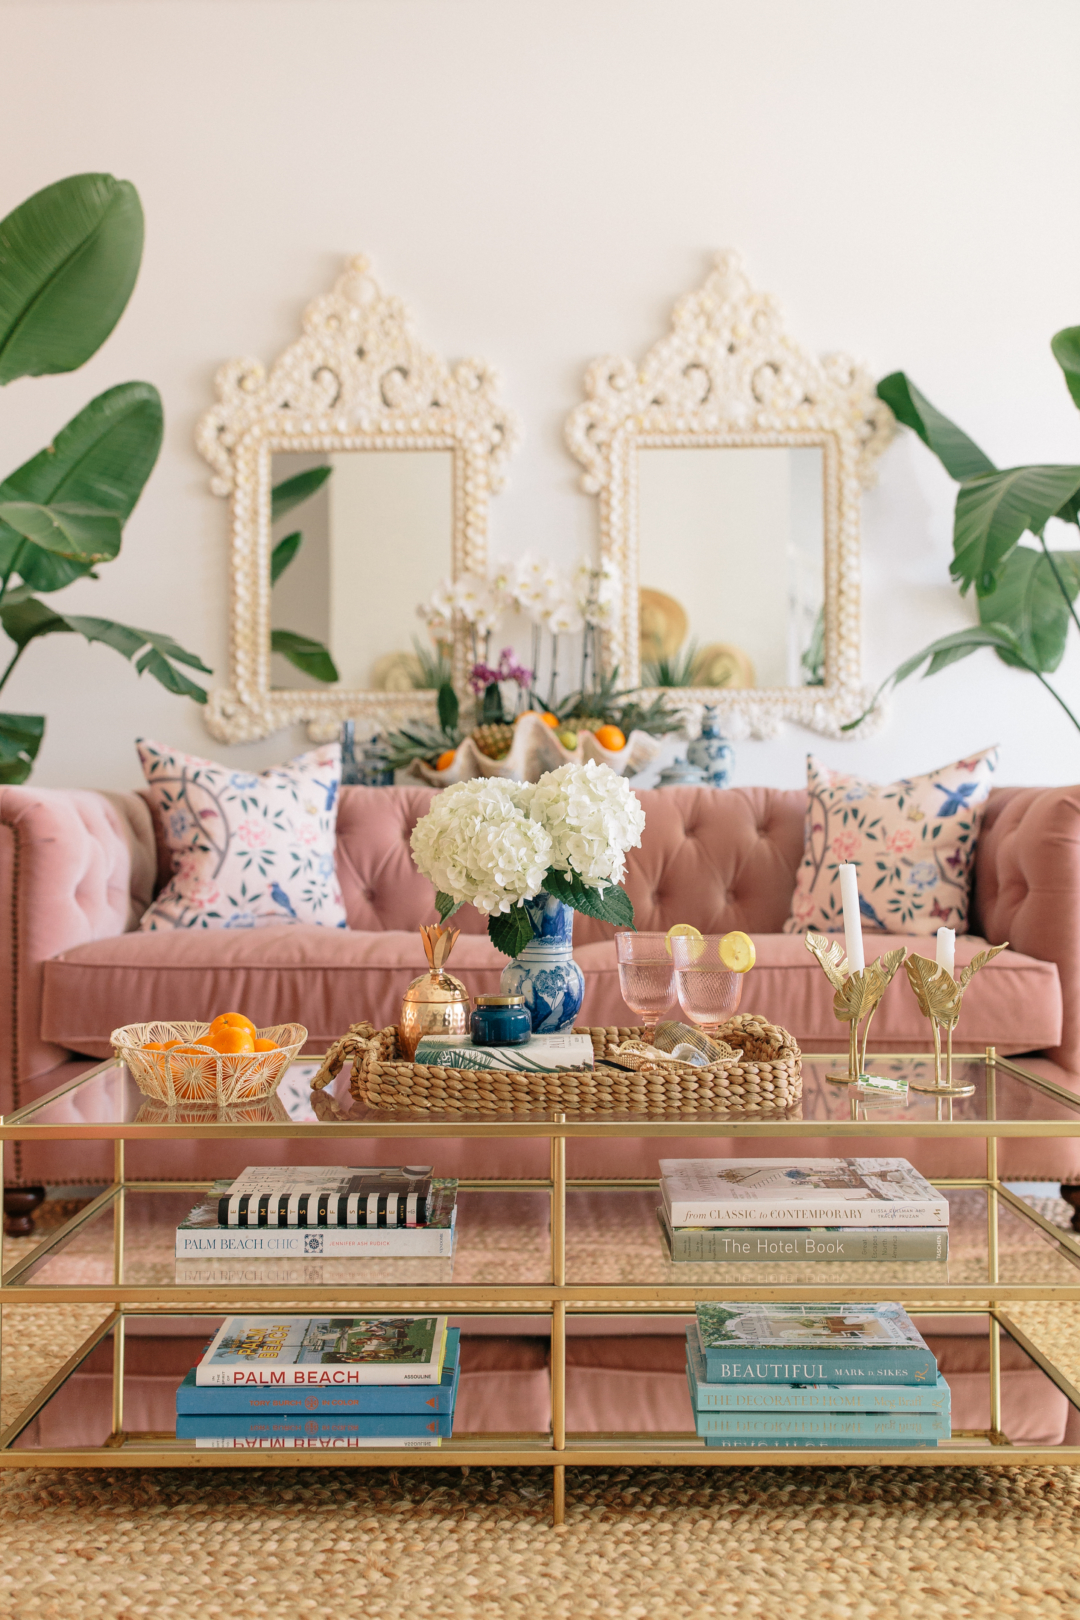 Home: Palm Beach Lately's Favorite Blush Couches